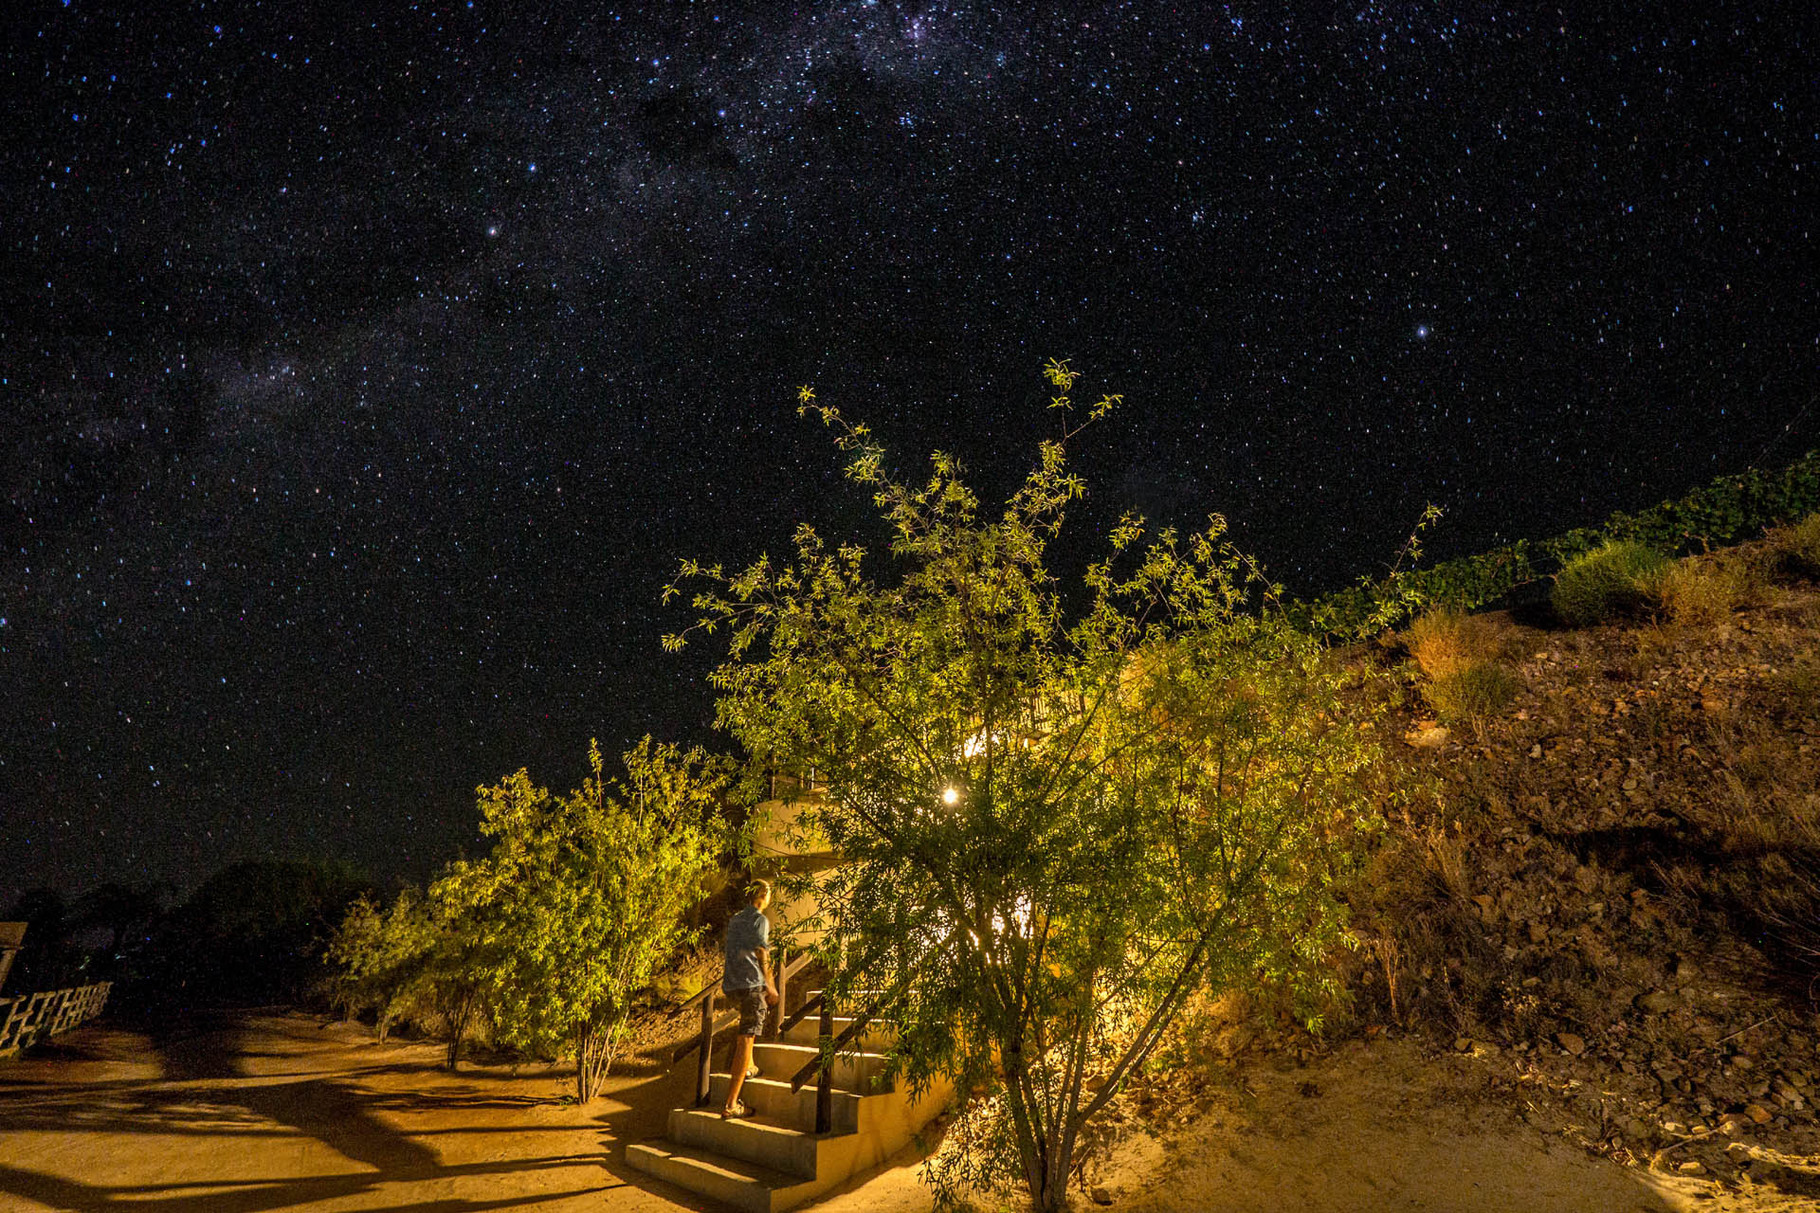 """Stairways to haven"" - Great view on Milky way"